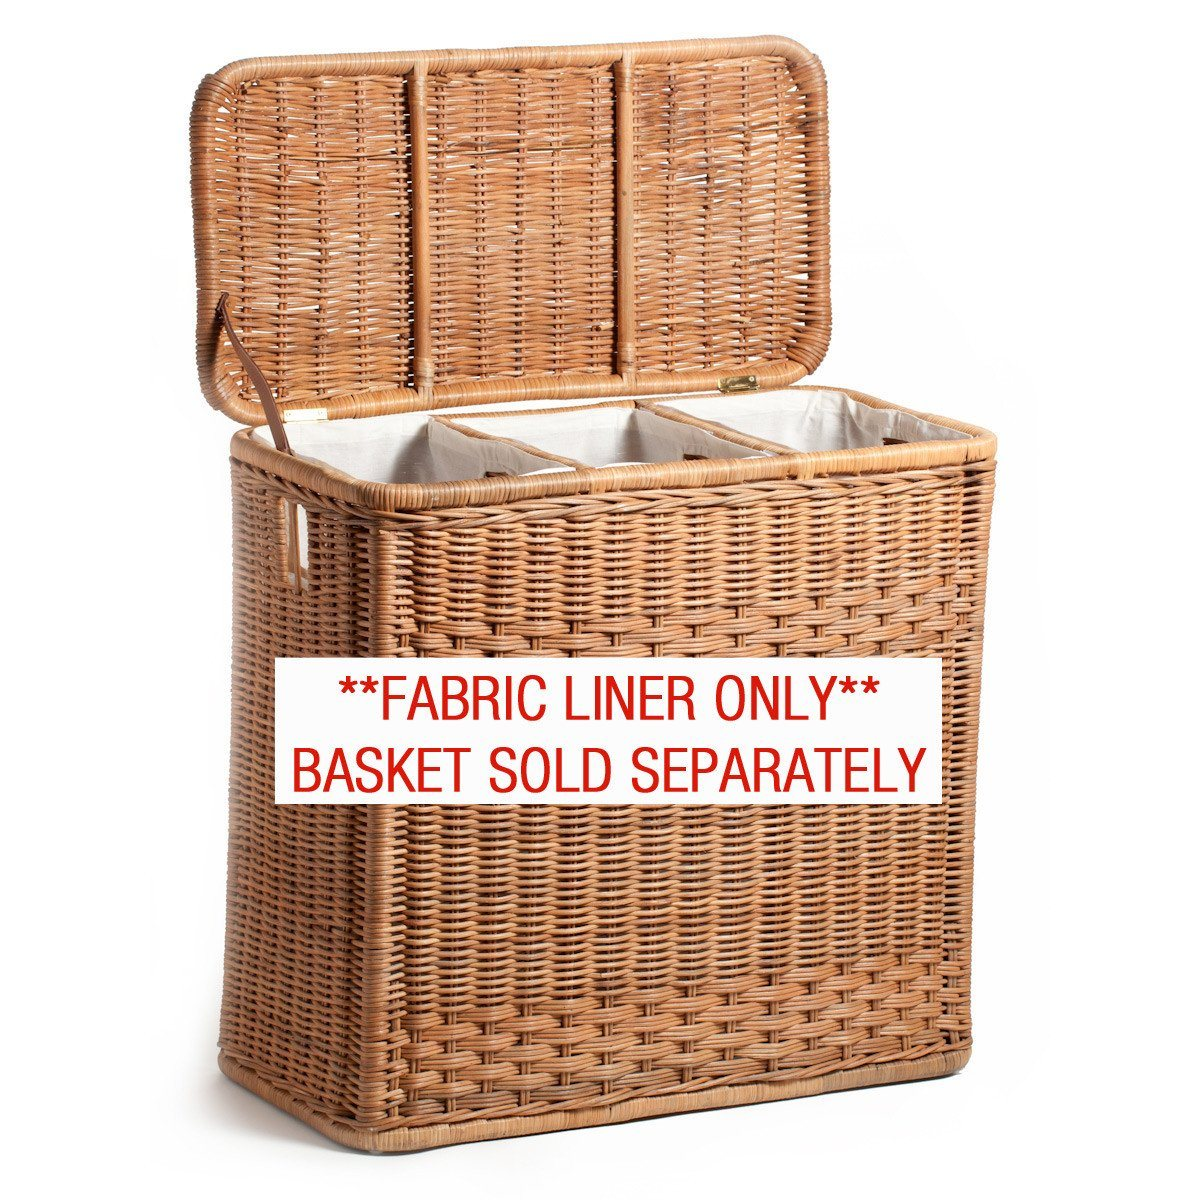 Fabric Liner For 3 Compartment Wicker Laundry Hamper, Basket Sold  Separately | The Basket